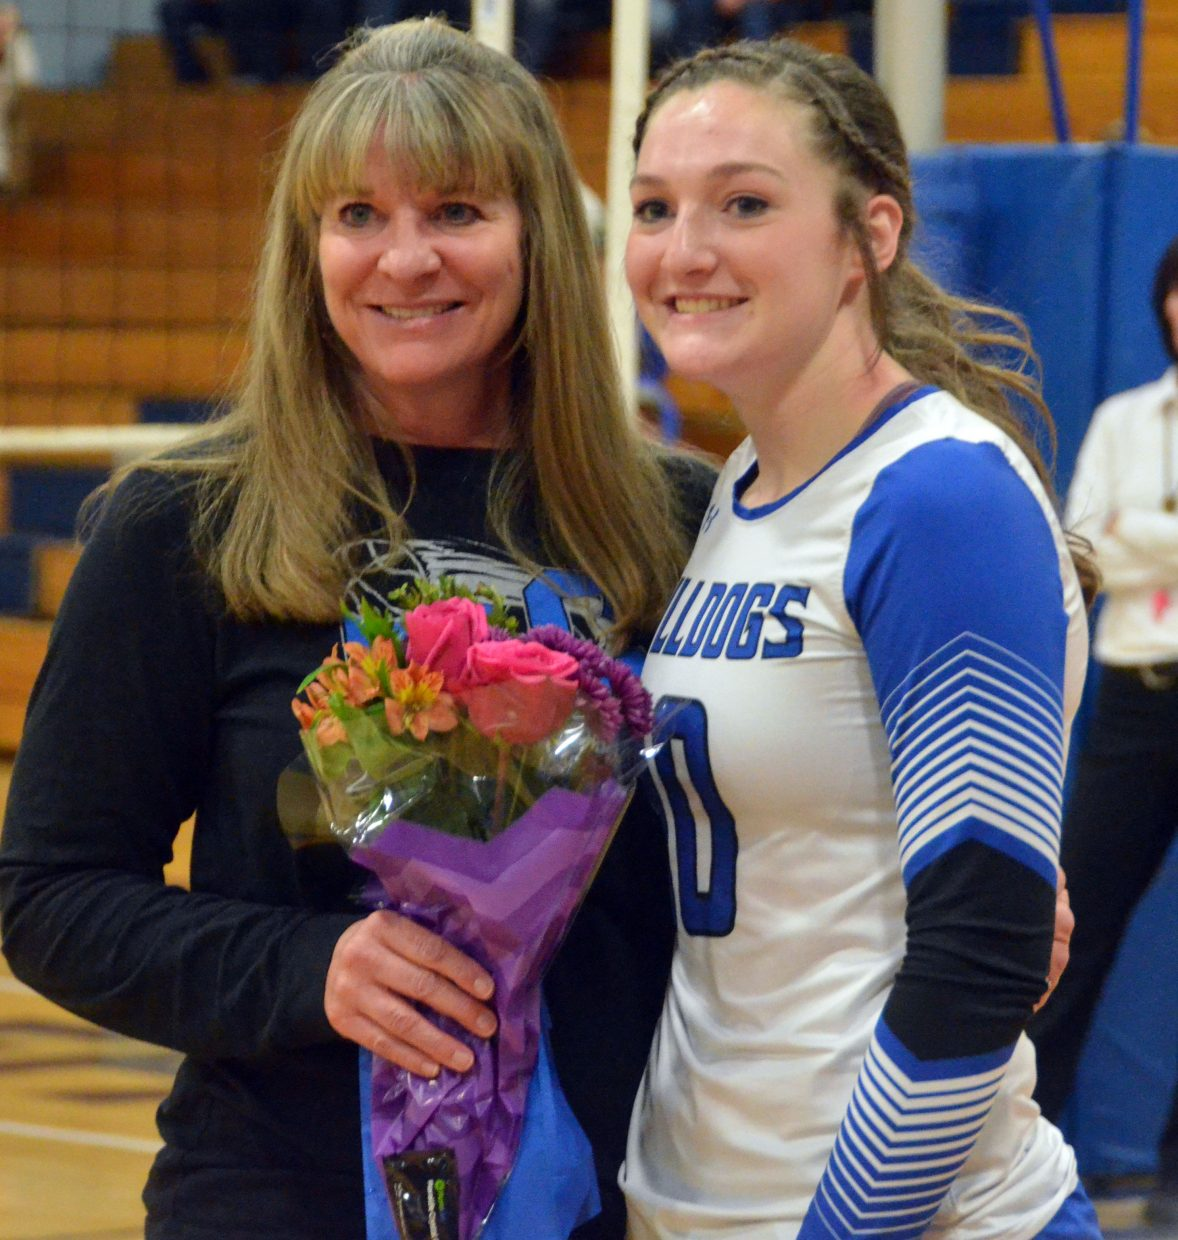 Moffat County High School's Tiffany Hildebrandt is joined by her mother Kathy on the court during the Senior Night ceremony.